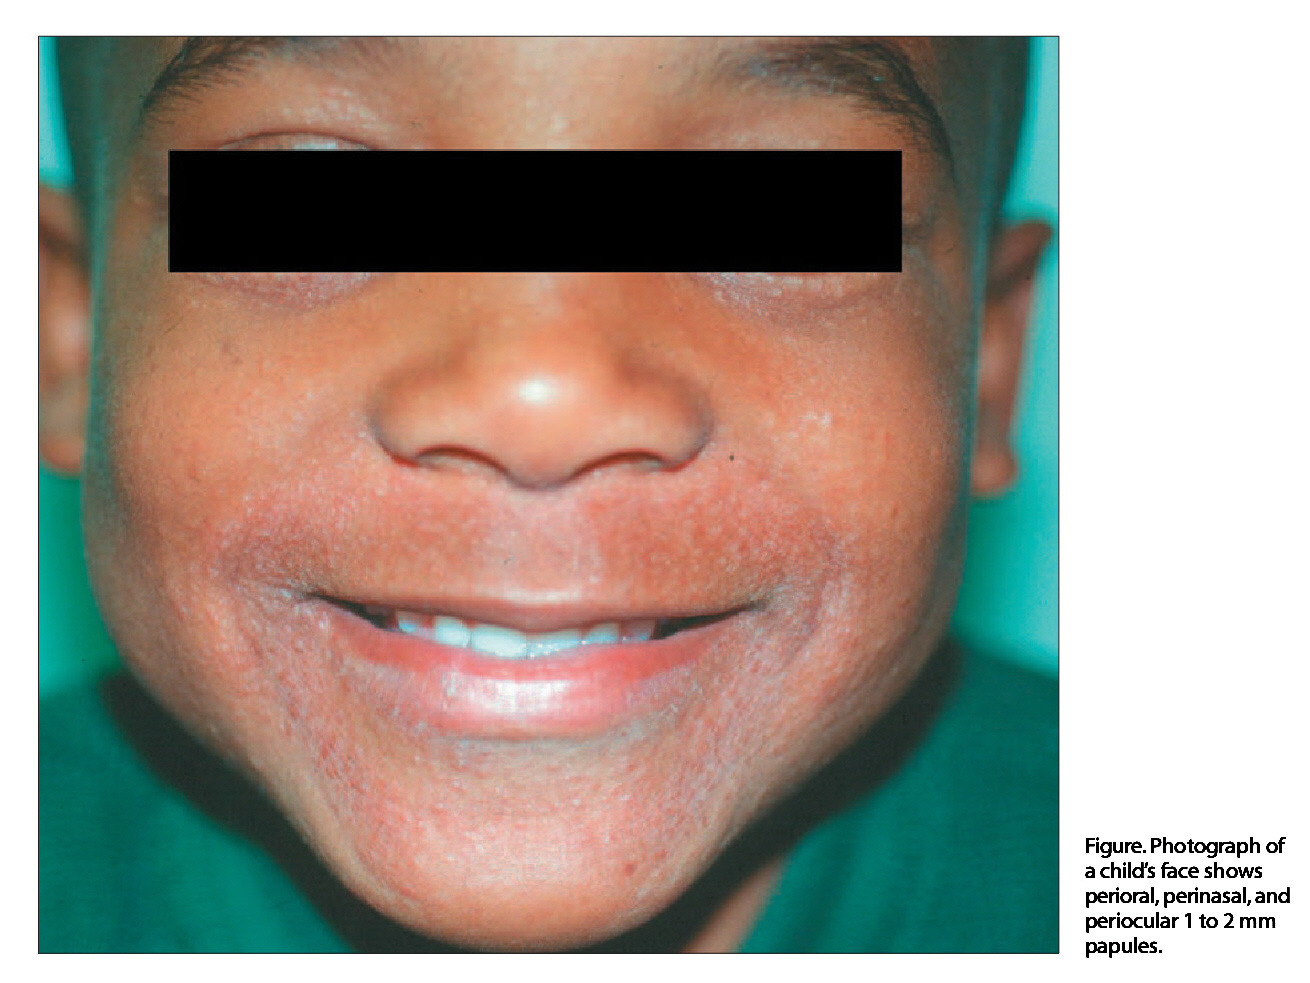 Figure. Photograph of a child's face shows perioral, perinasal, and periocular 1 to 2 mm papules.